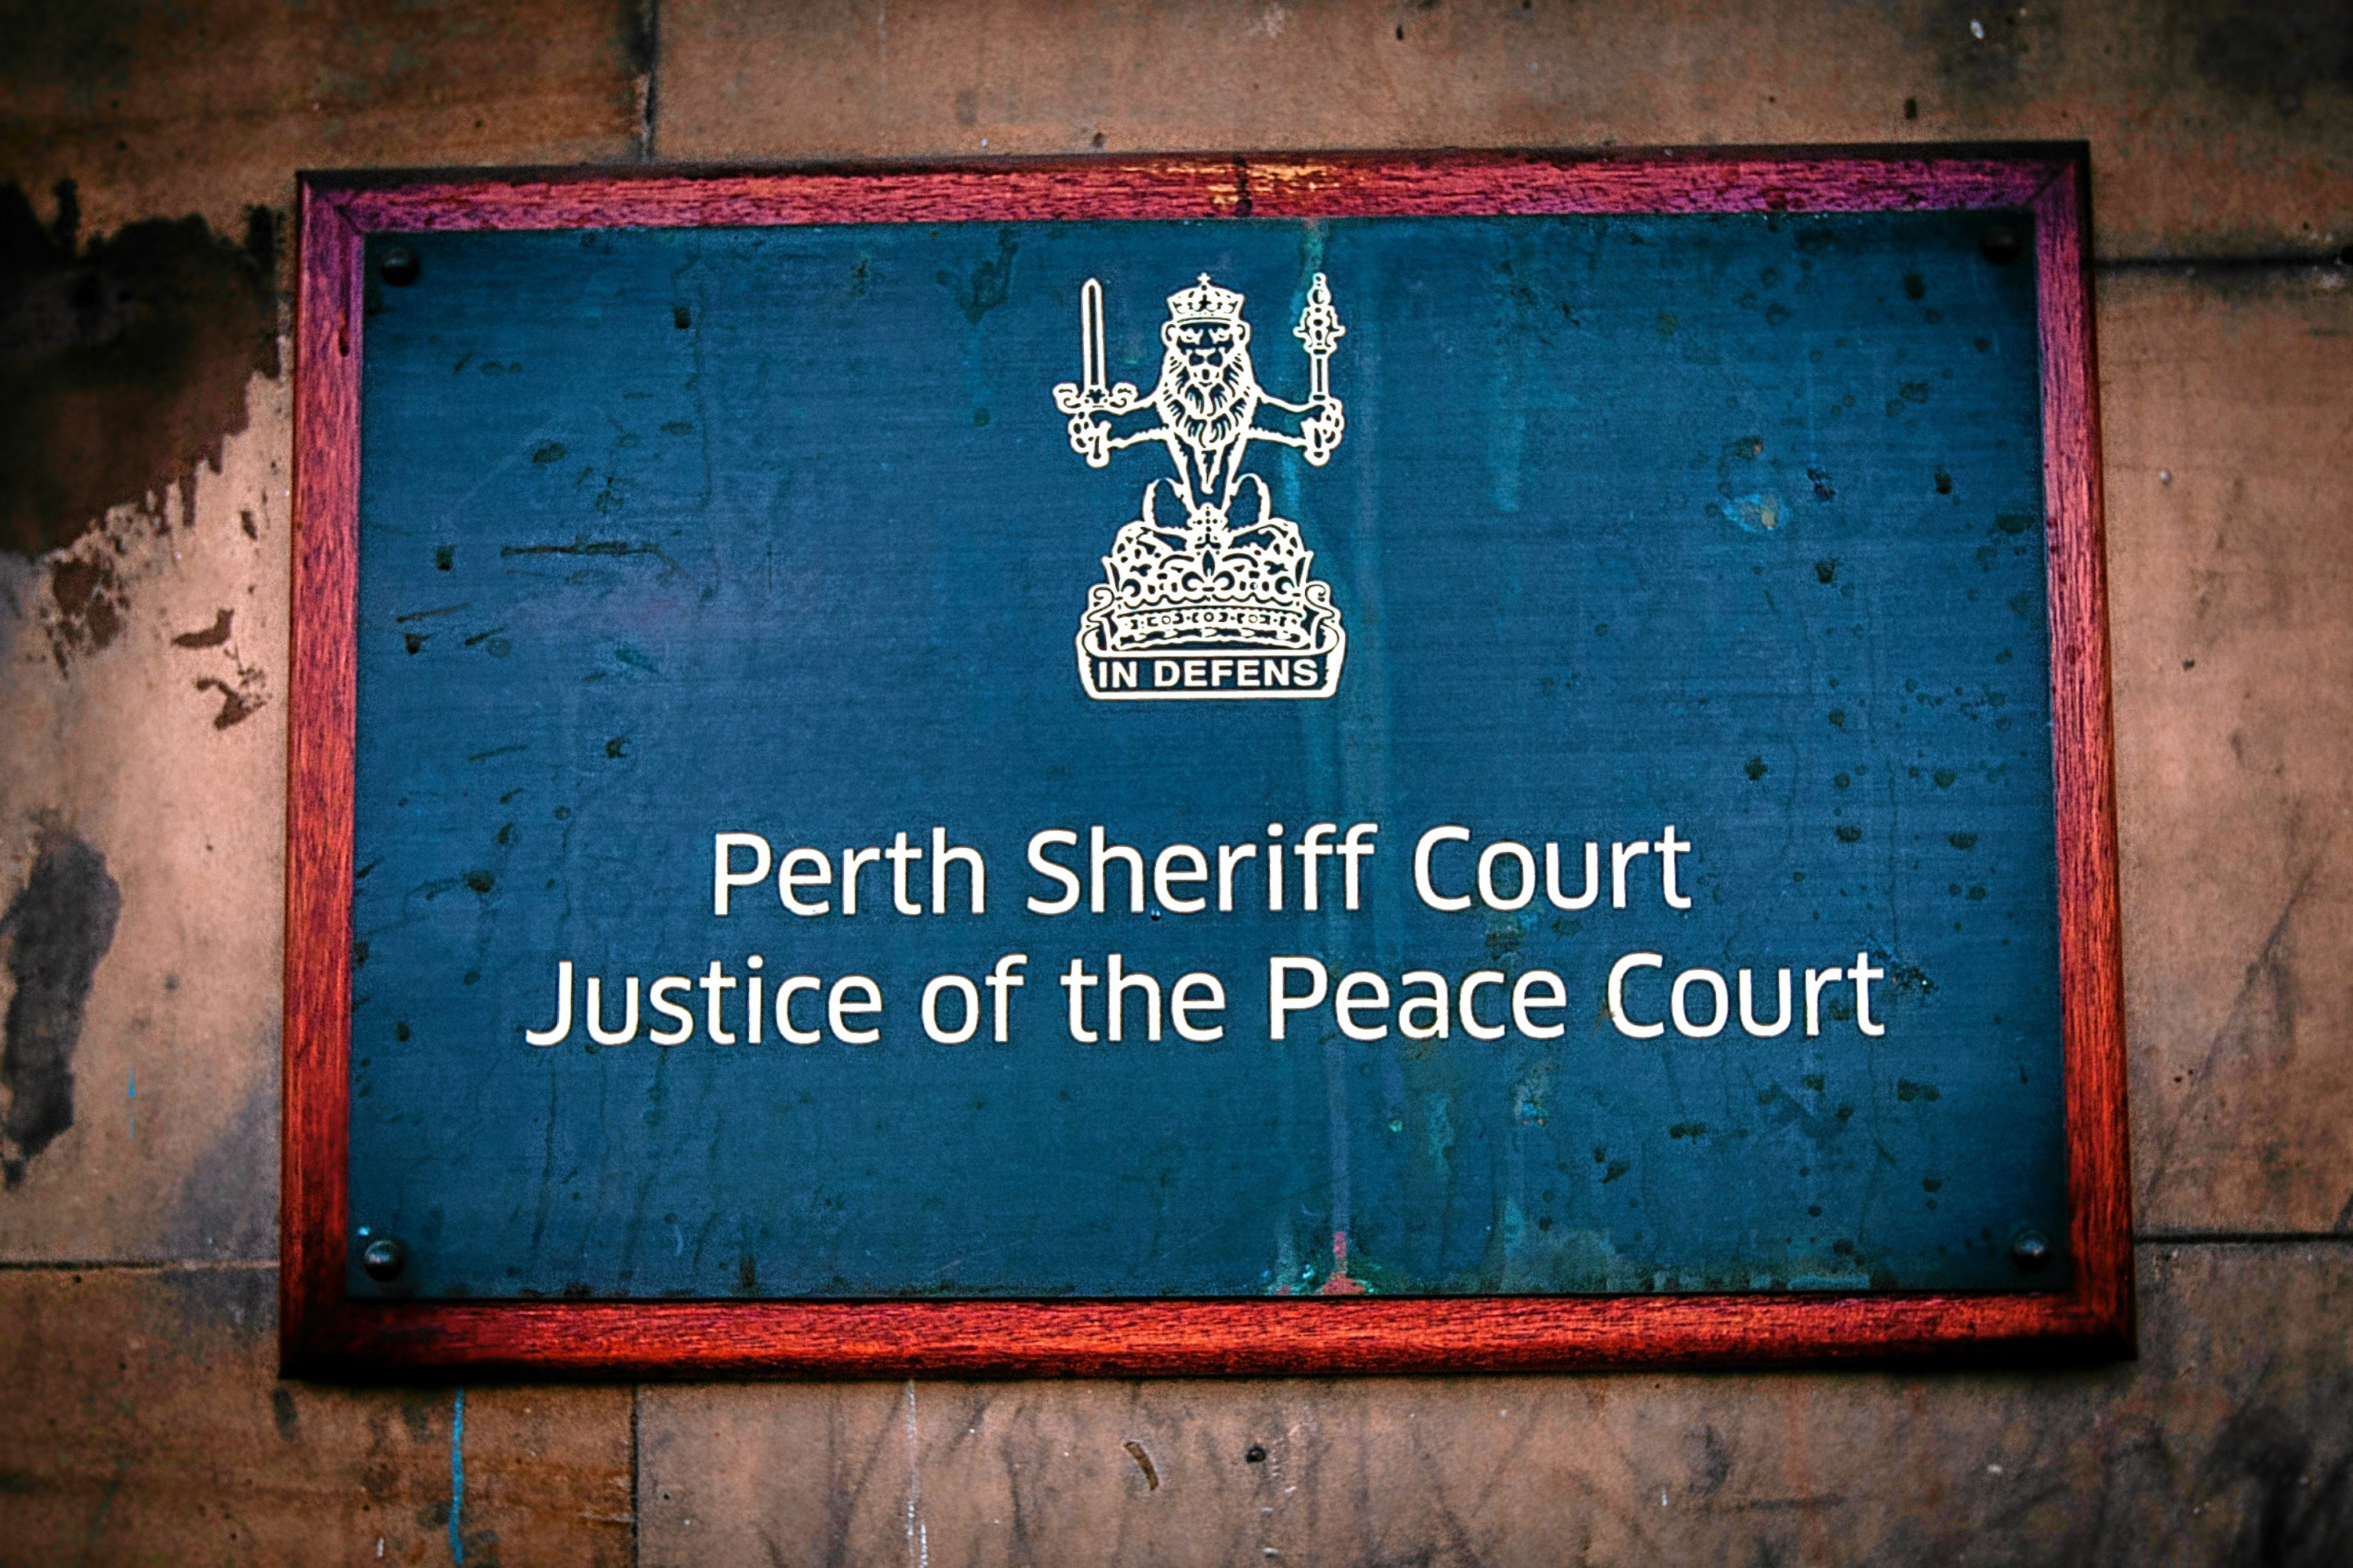 Perth Sheriff Court.